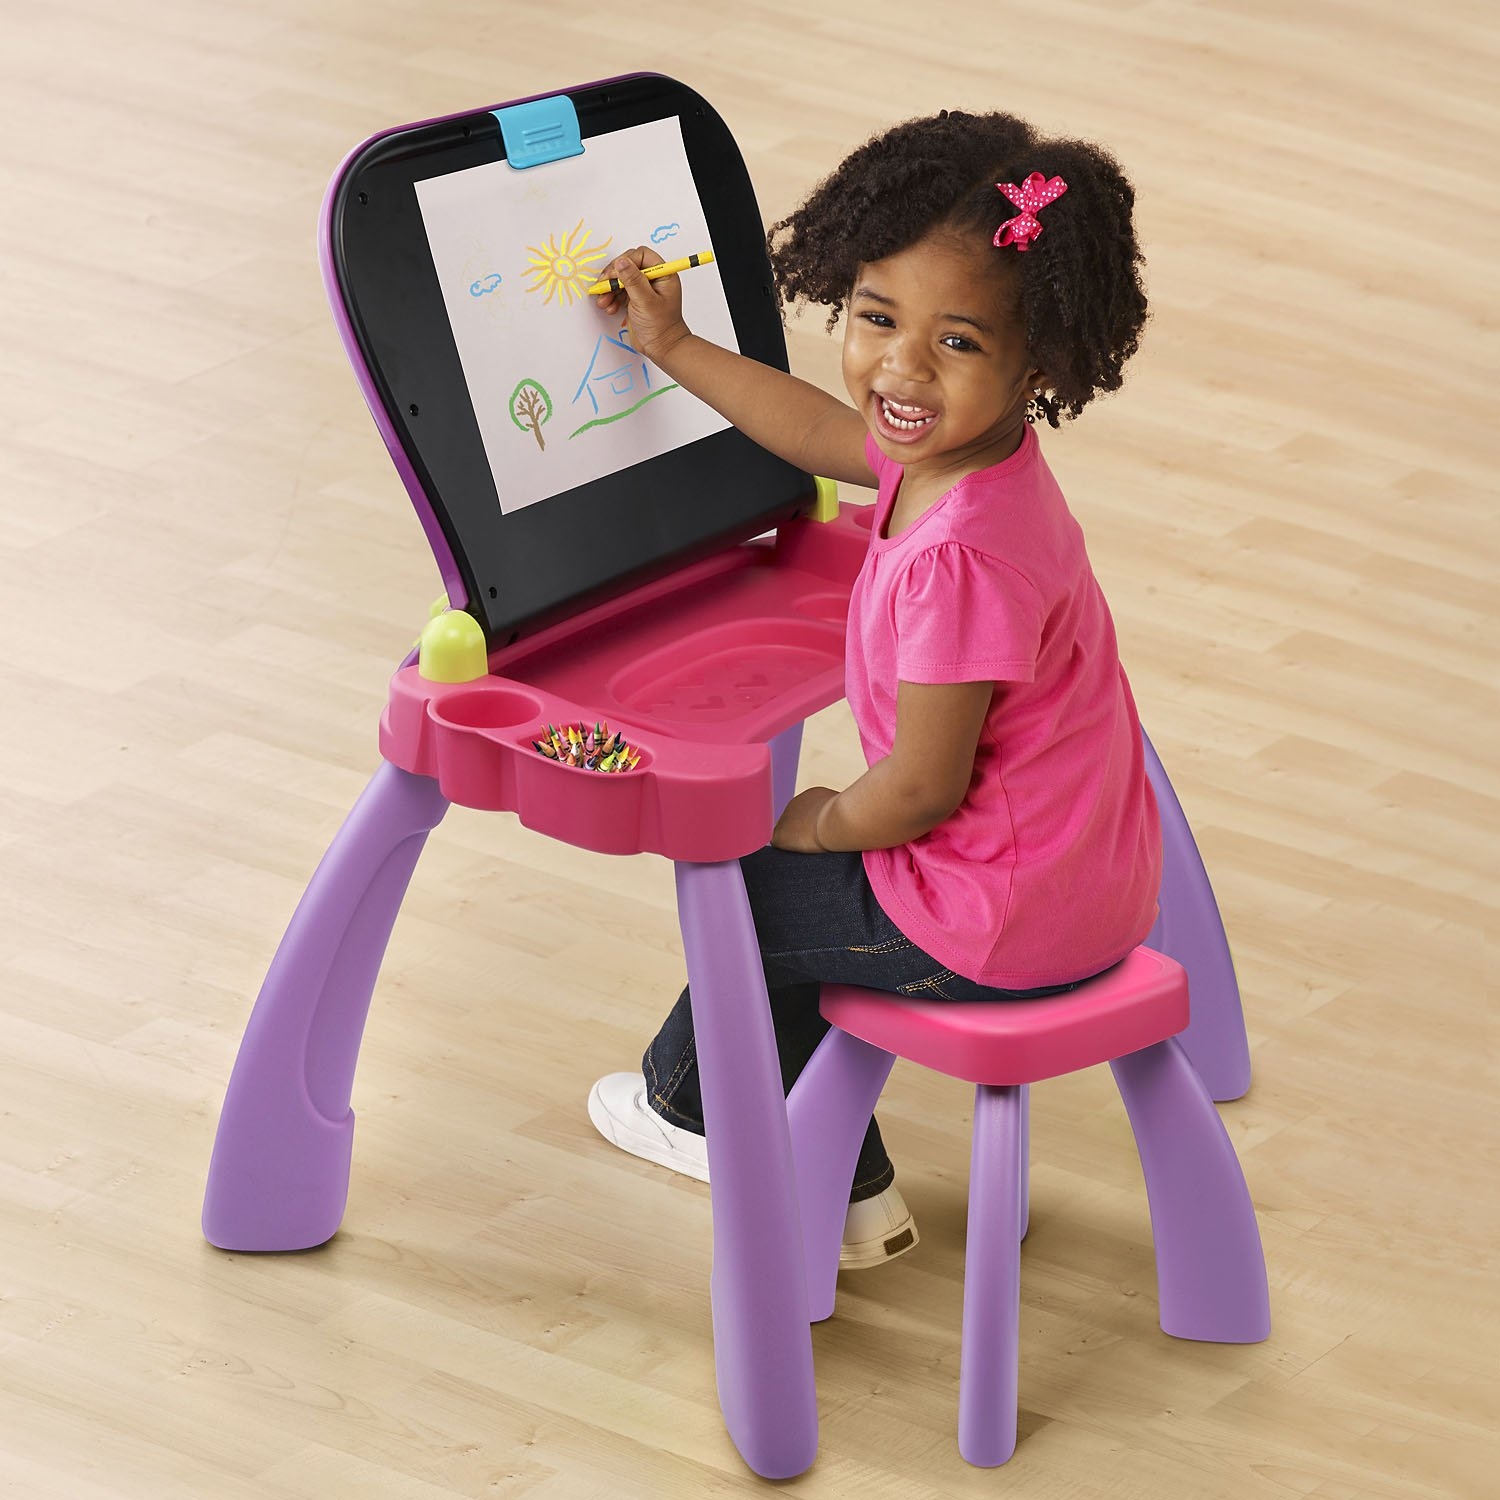 VTech Touch and Learn Activity Desk, Purple by VTech (Image #4)